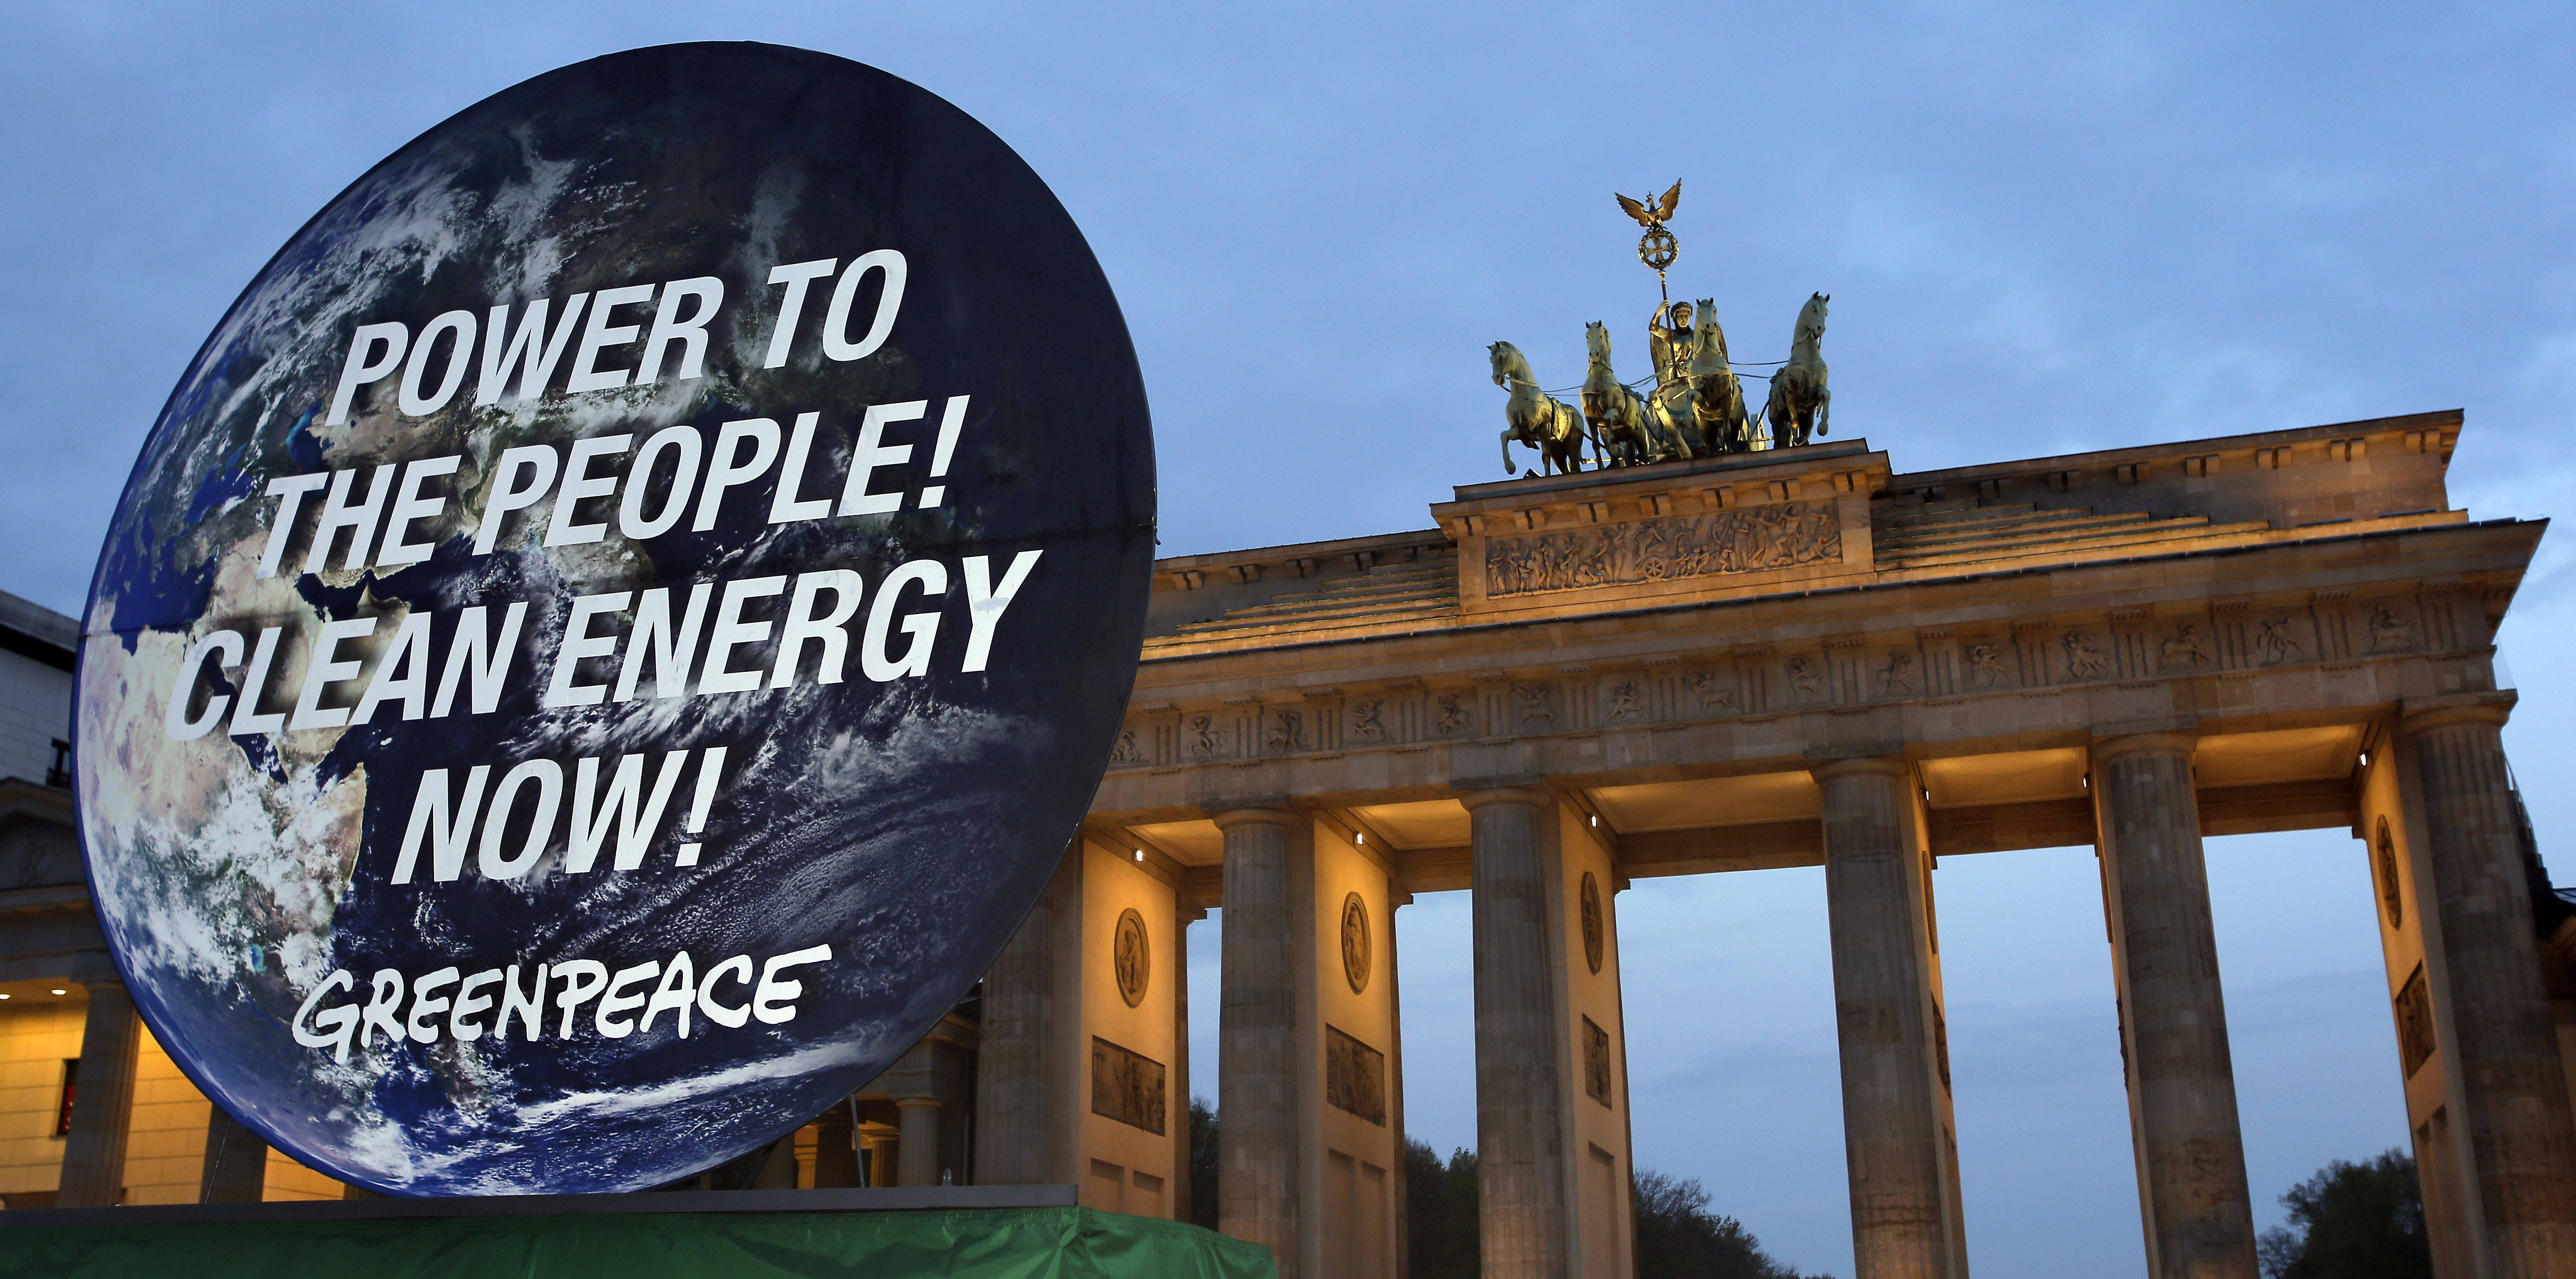 A giant poster of the international environmentalist organization Greenpeace is displayed in front of the Brandenburg Gate in Berlin, Germany, Sunday to support clean energy. After a one week meeting of the Intergovernmental Panel on Climate Change in Berlin the final document which is released on Sunday said a global shift to renewable energy from fossil fuels like oil and coal are required to avoid potentially devastating sea level rise, flooding, droughts and other impacts of warming.